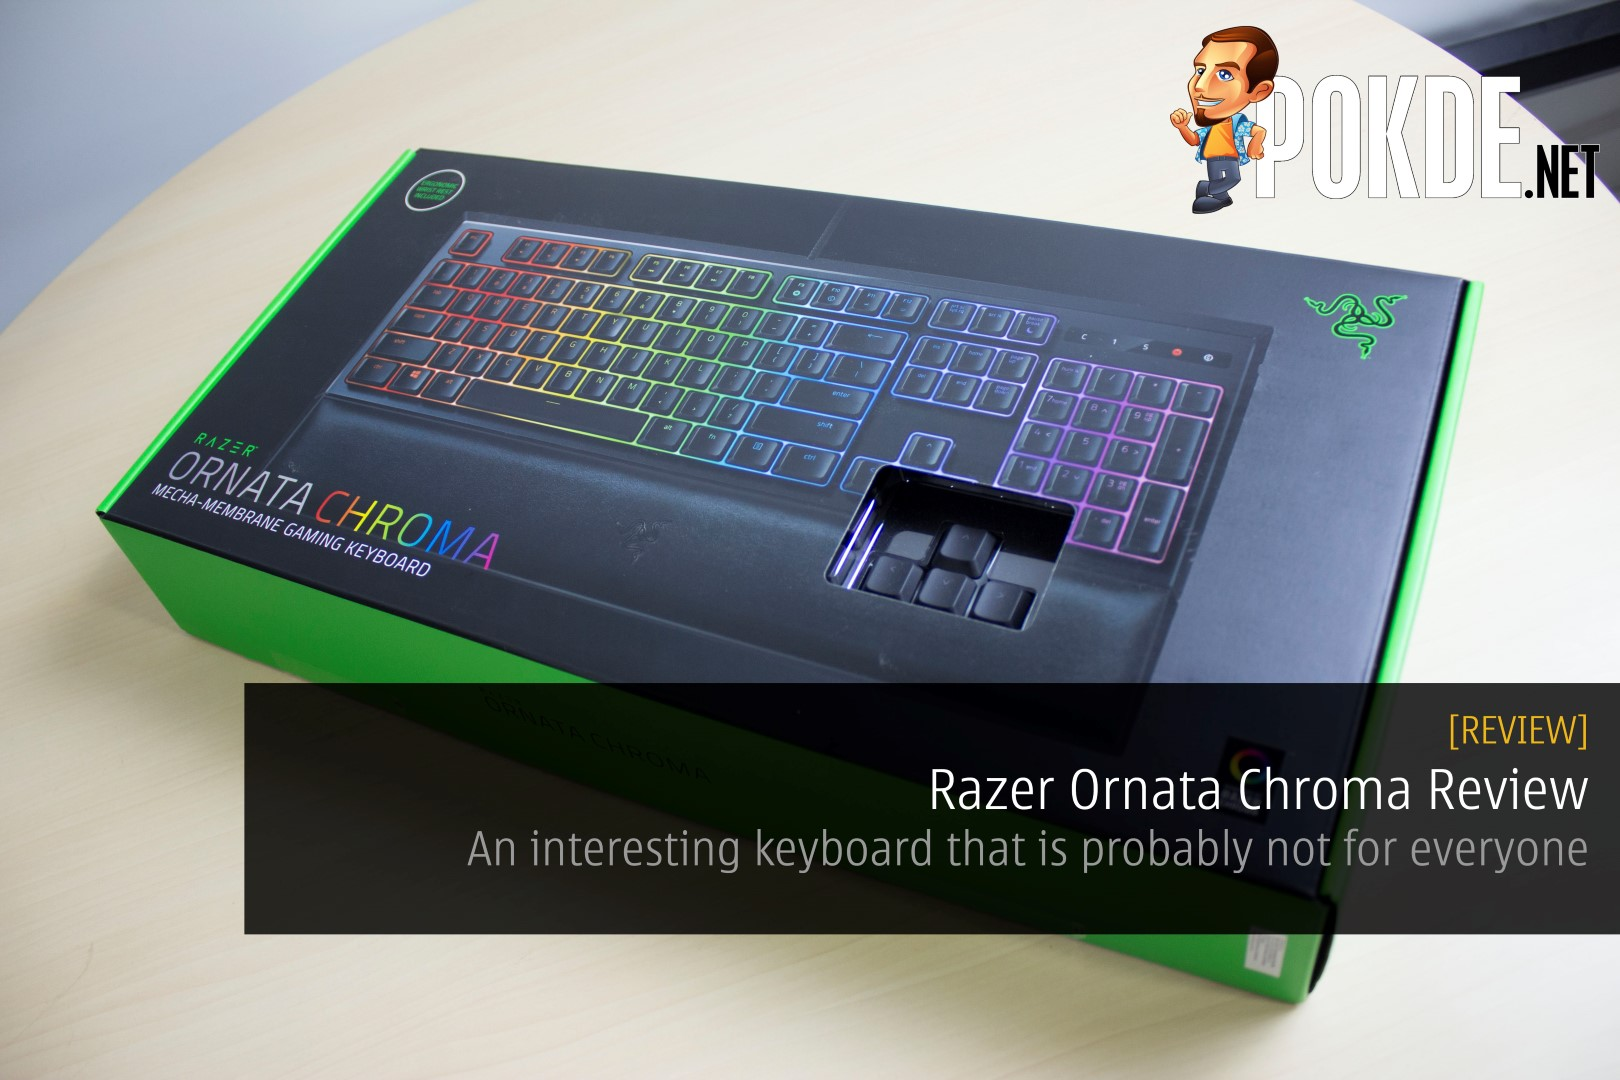 Razer Ornata Chroma Review - An interesting hybrid keyboard